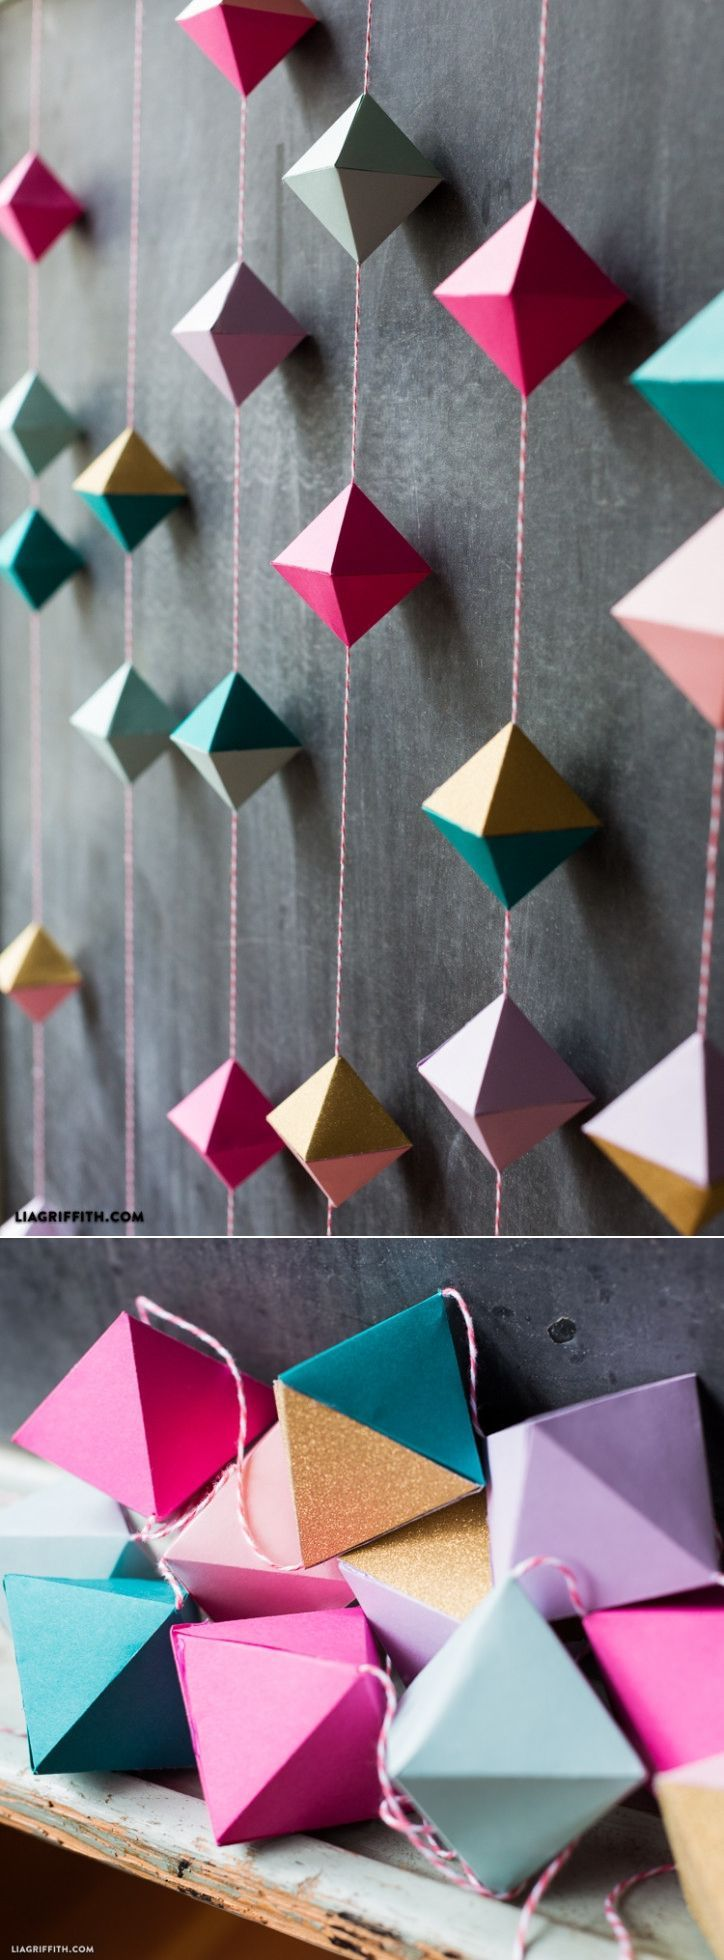 origami hanging decorations instructions